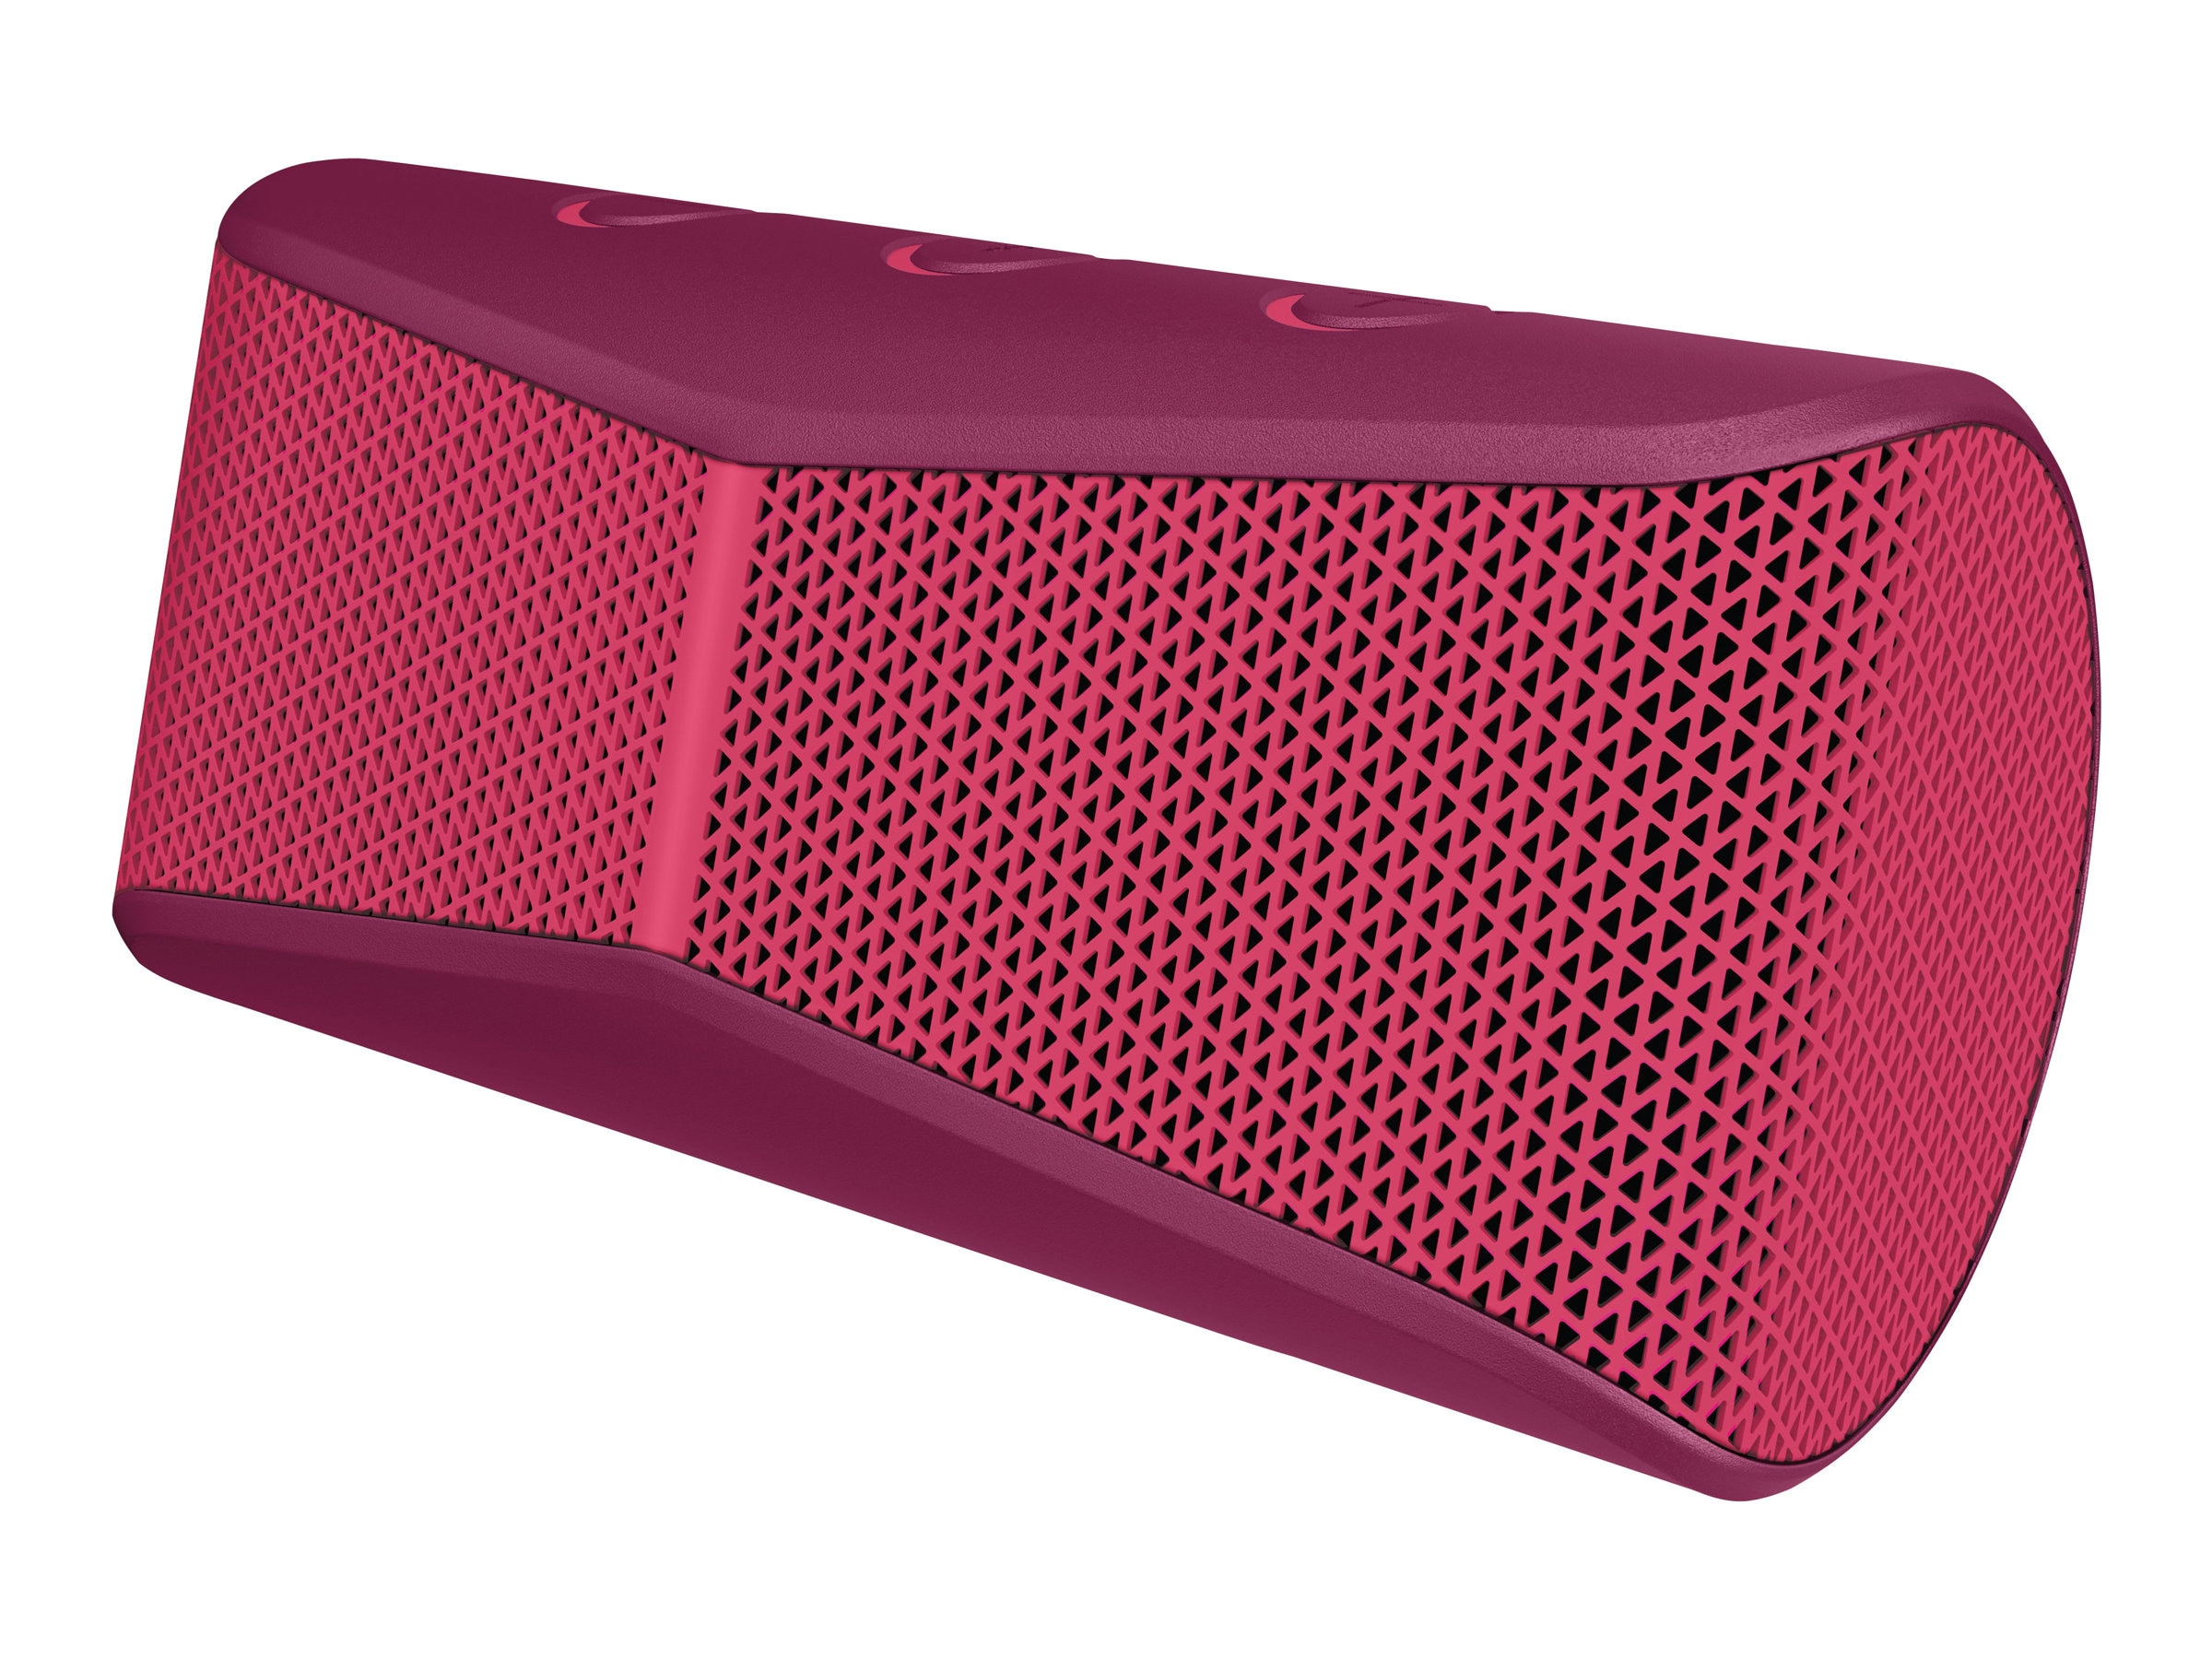 Logitech X300 Wireless Mobile Speaker - Red, 984-000401, 17467213, Speakers - Audio